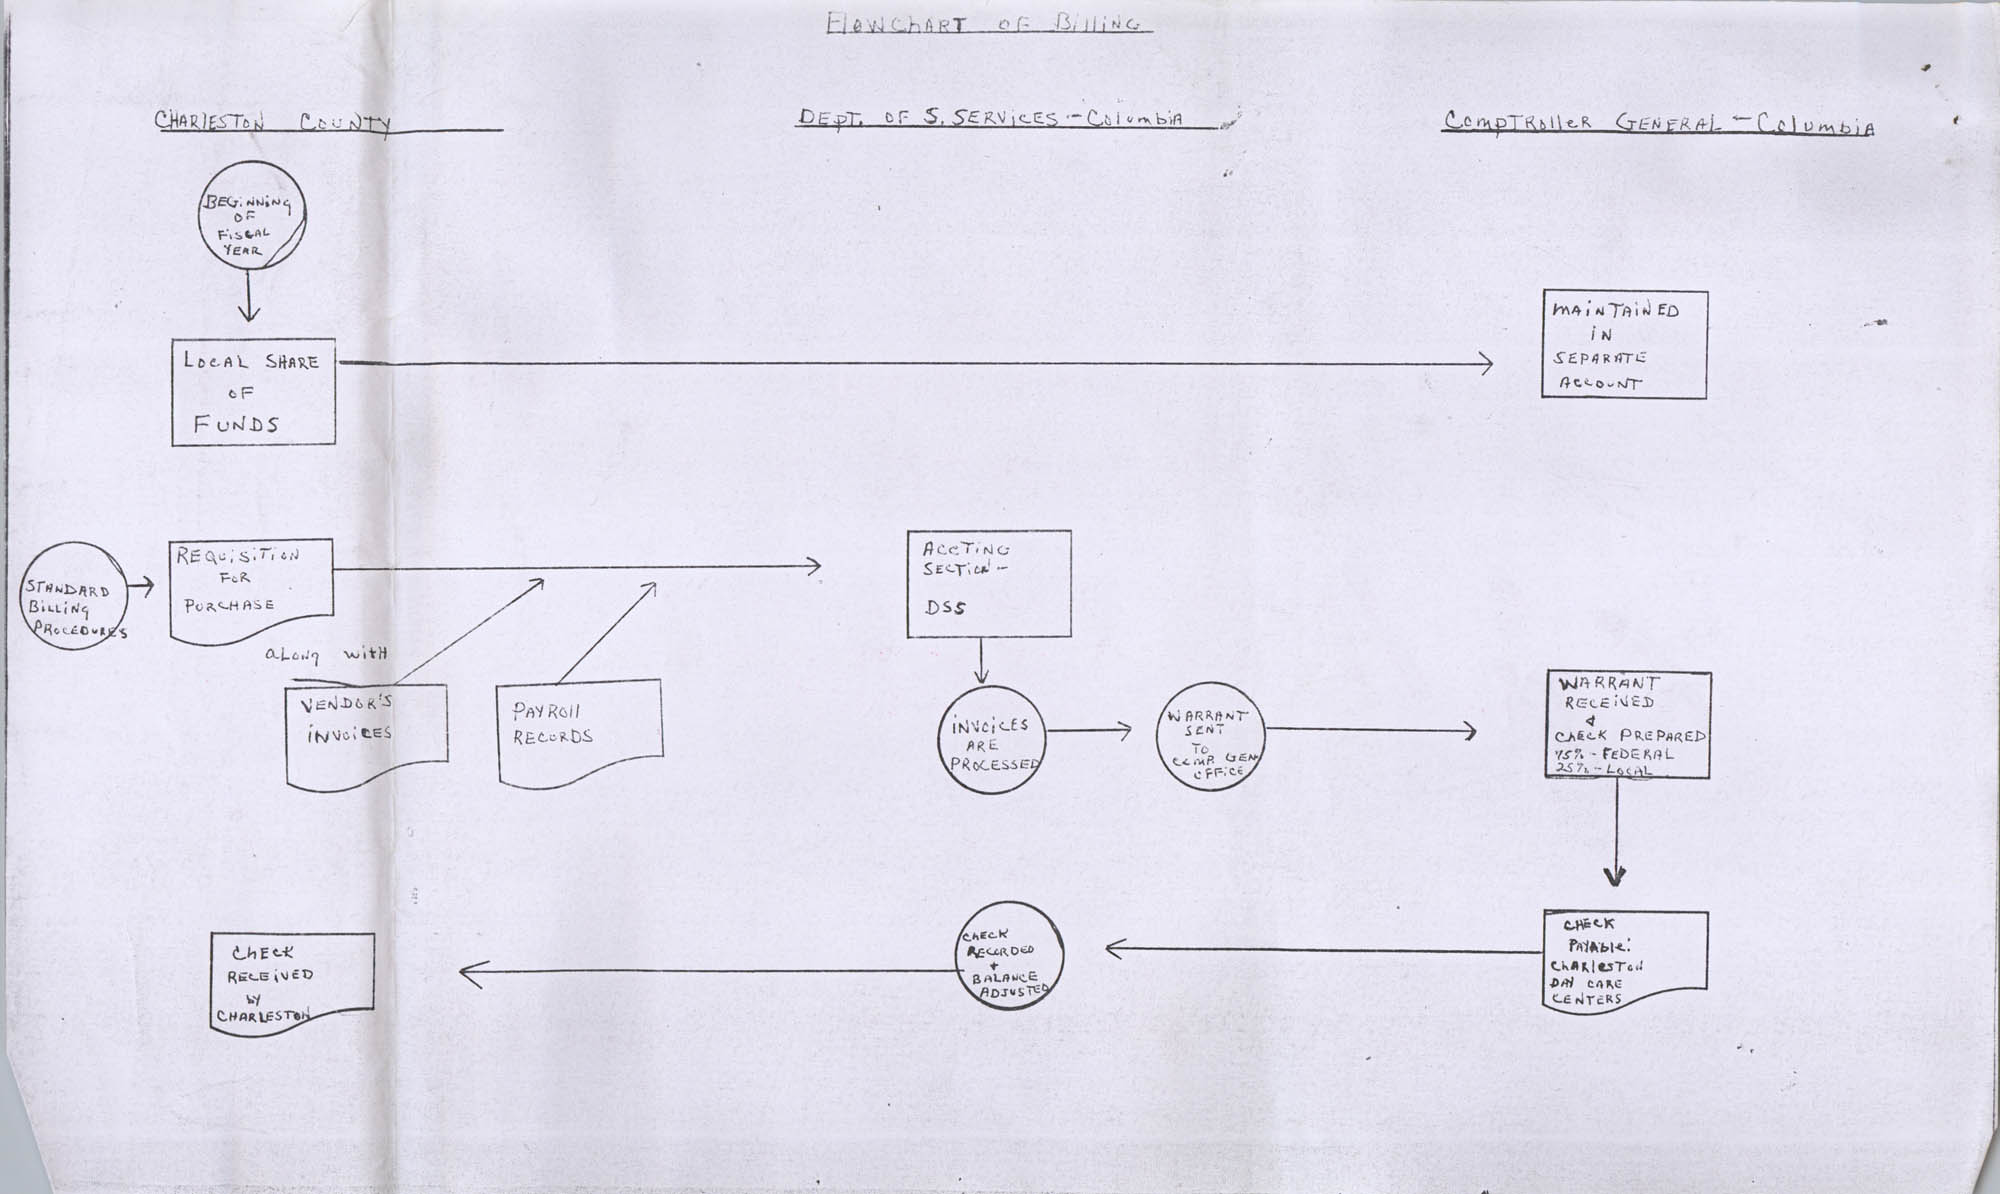 Flowchart of Billing